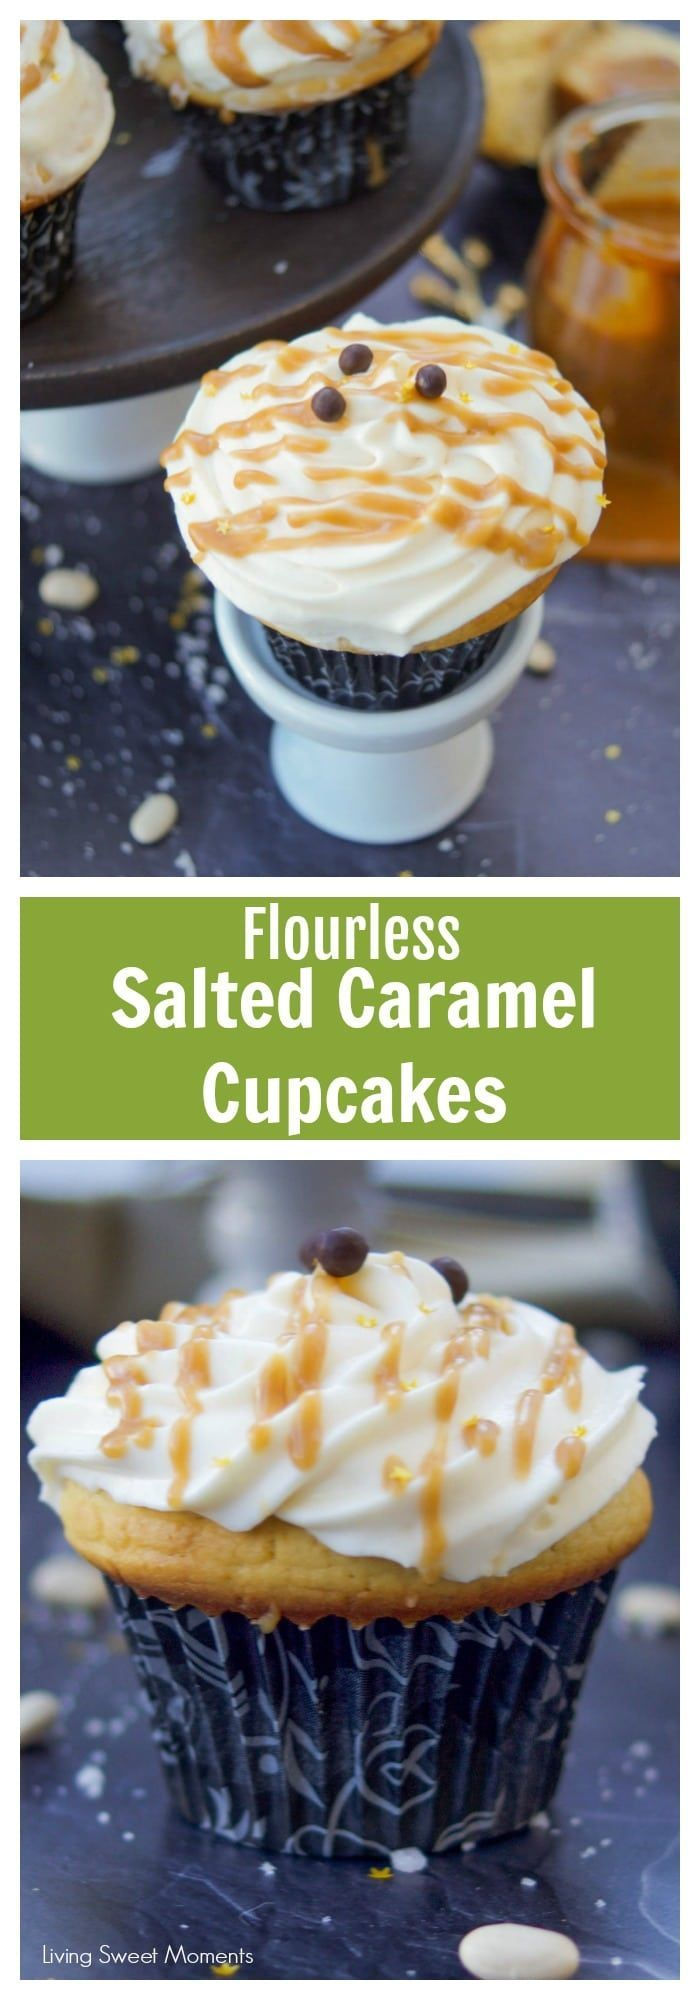 These decadent Salted Caramel Cupcakes have only 148 calories!!, flourless, & high in protein. Served with creamy frosting and caramel sauce. Dessert without the guilt. More healthy recipes at livingsweetmoments.com via @Livingsmoments #ad #TrimHealthyTable